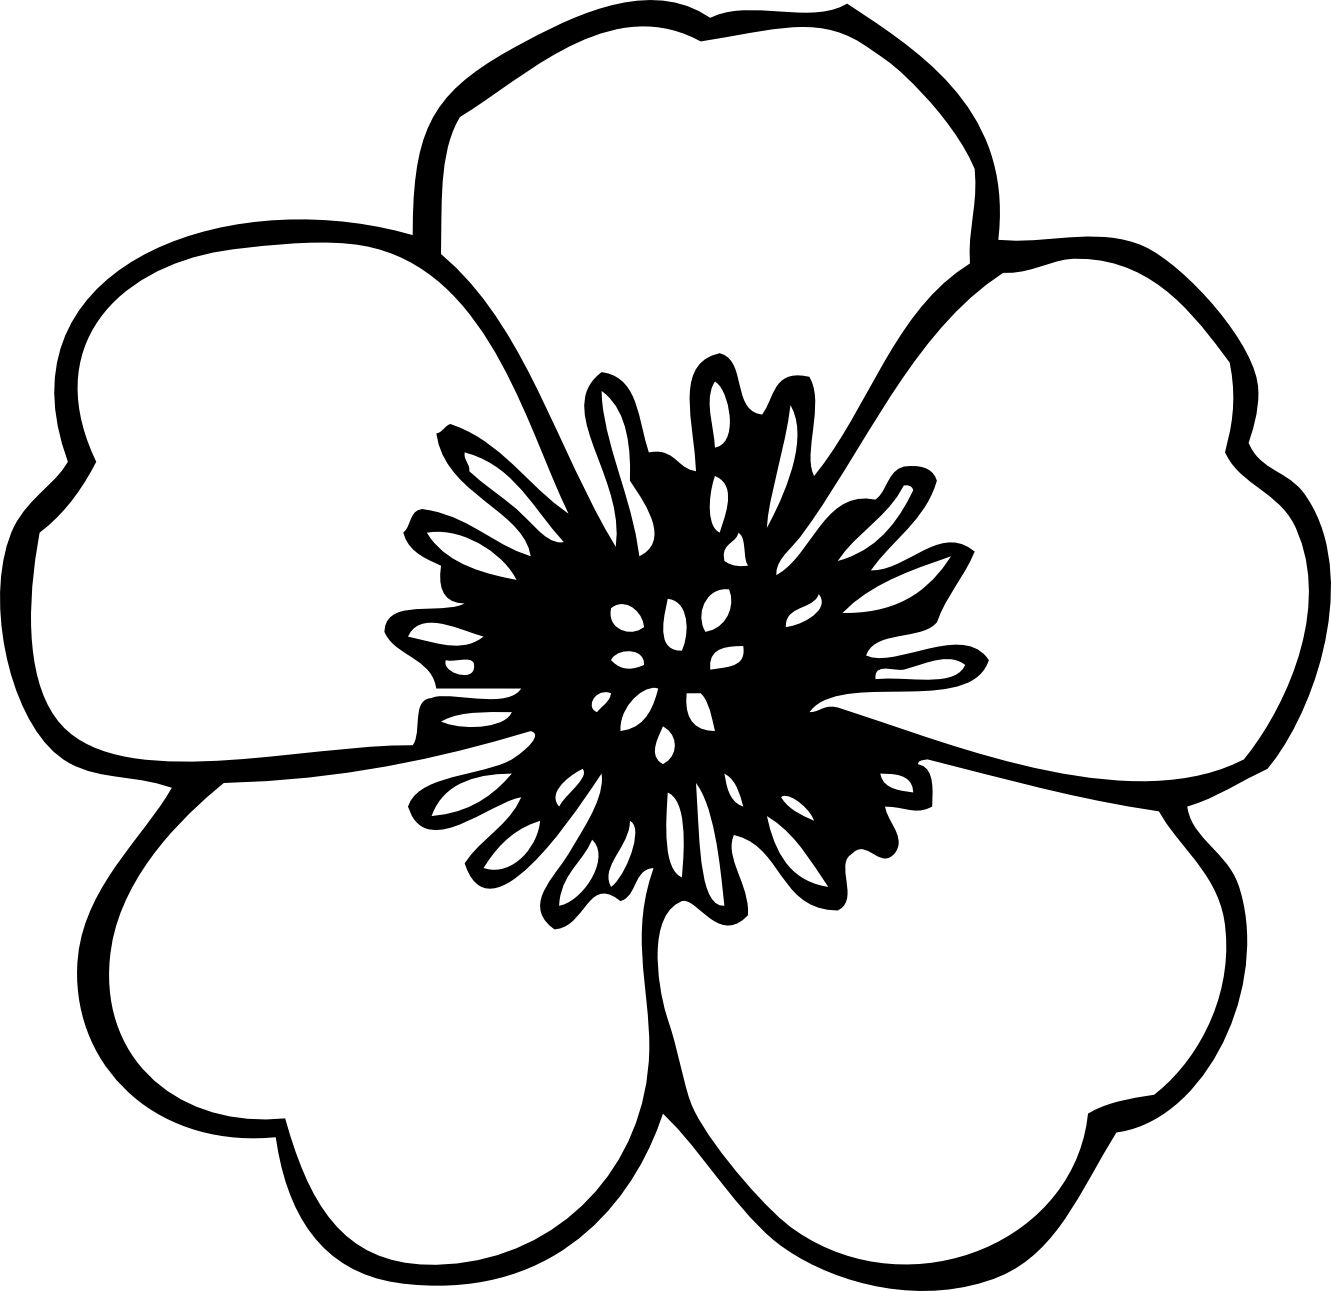 tulip%20clipart%20black%20and%20white